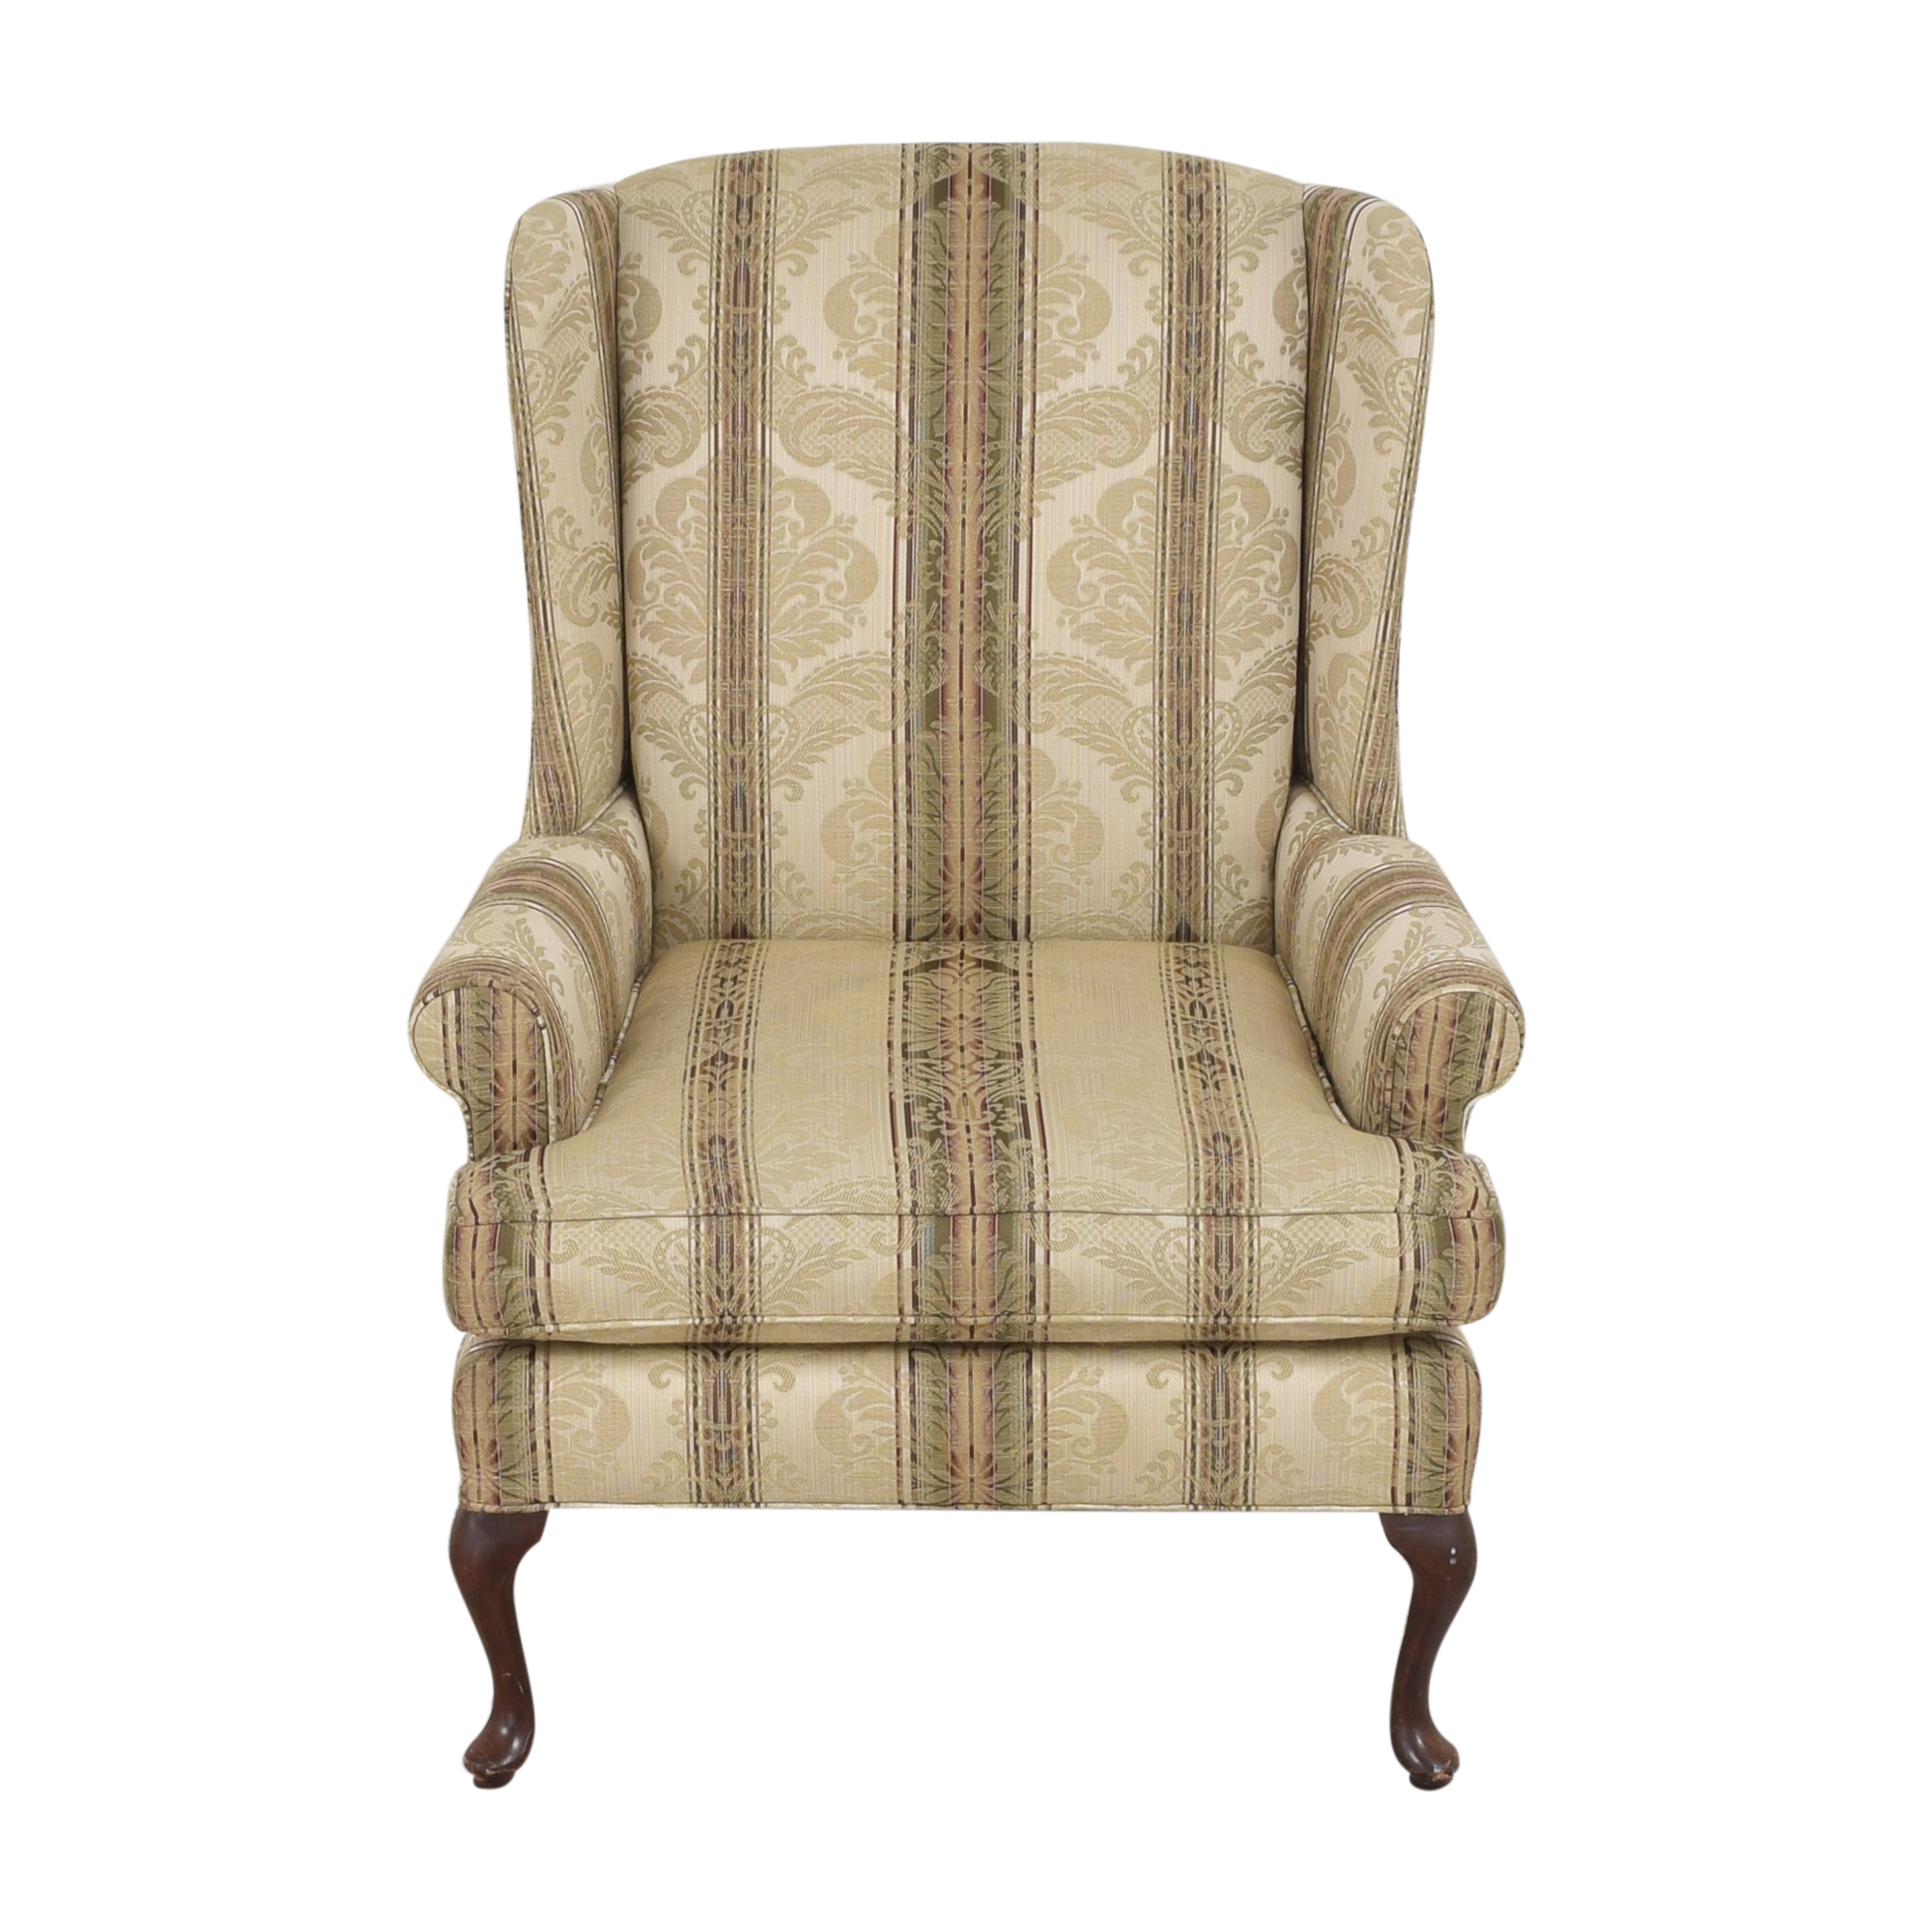 Thomasville Thomasville Damask Striped Wingback Chair dimensions